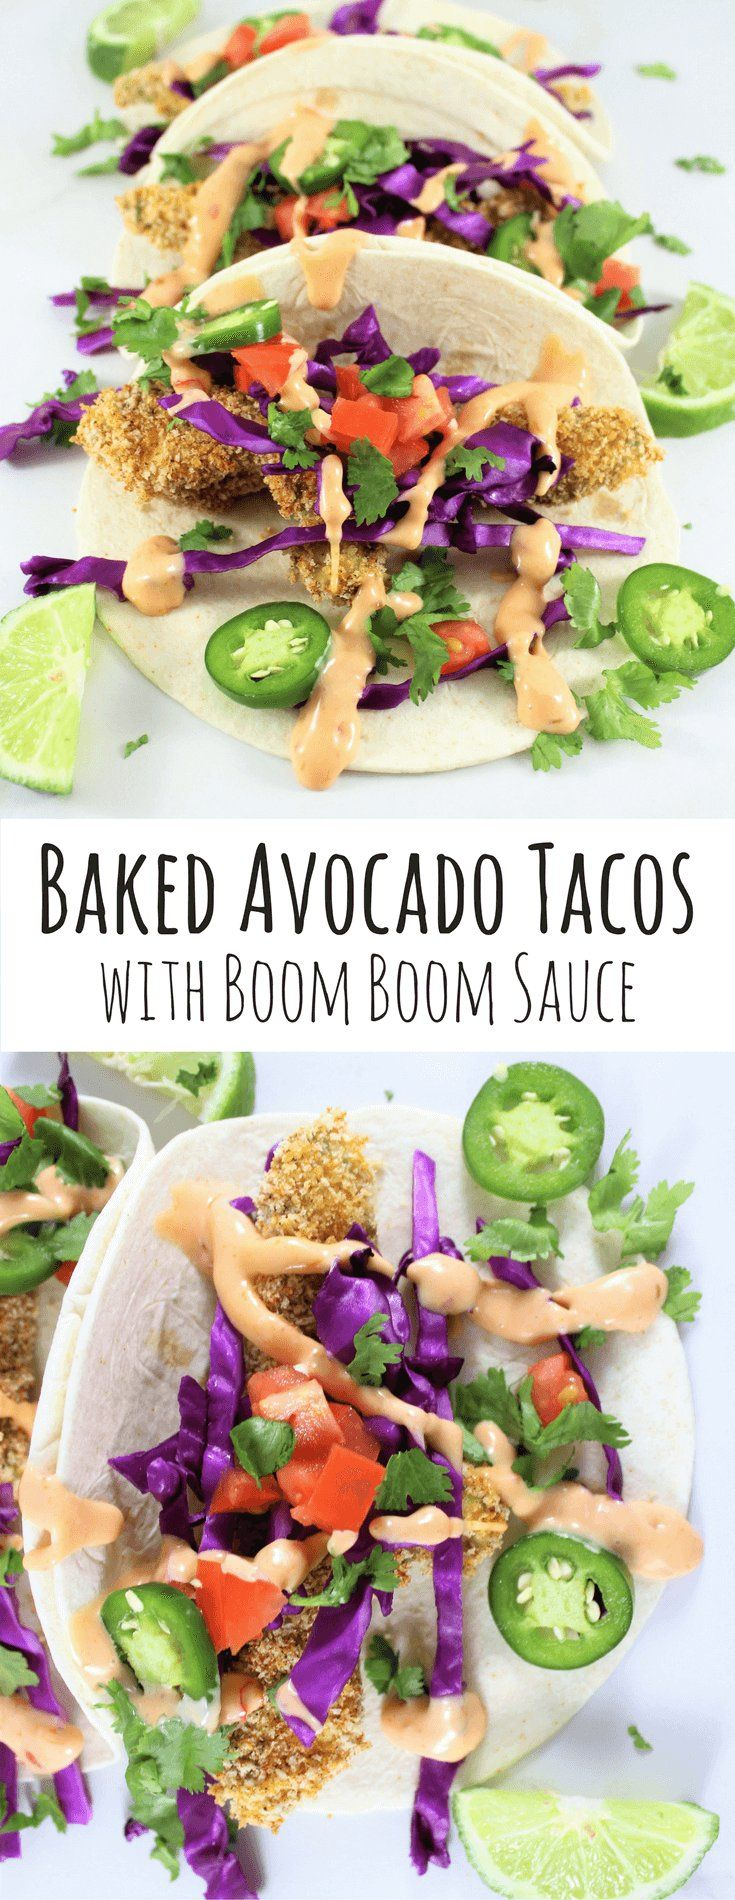 Baked Avocado Tacos with Boom Boom Sauce | Vegetarian